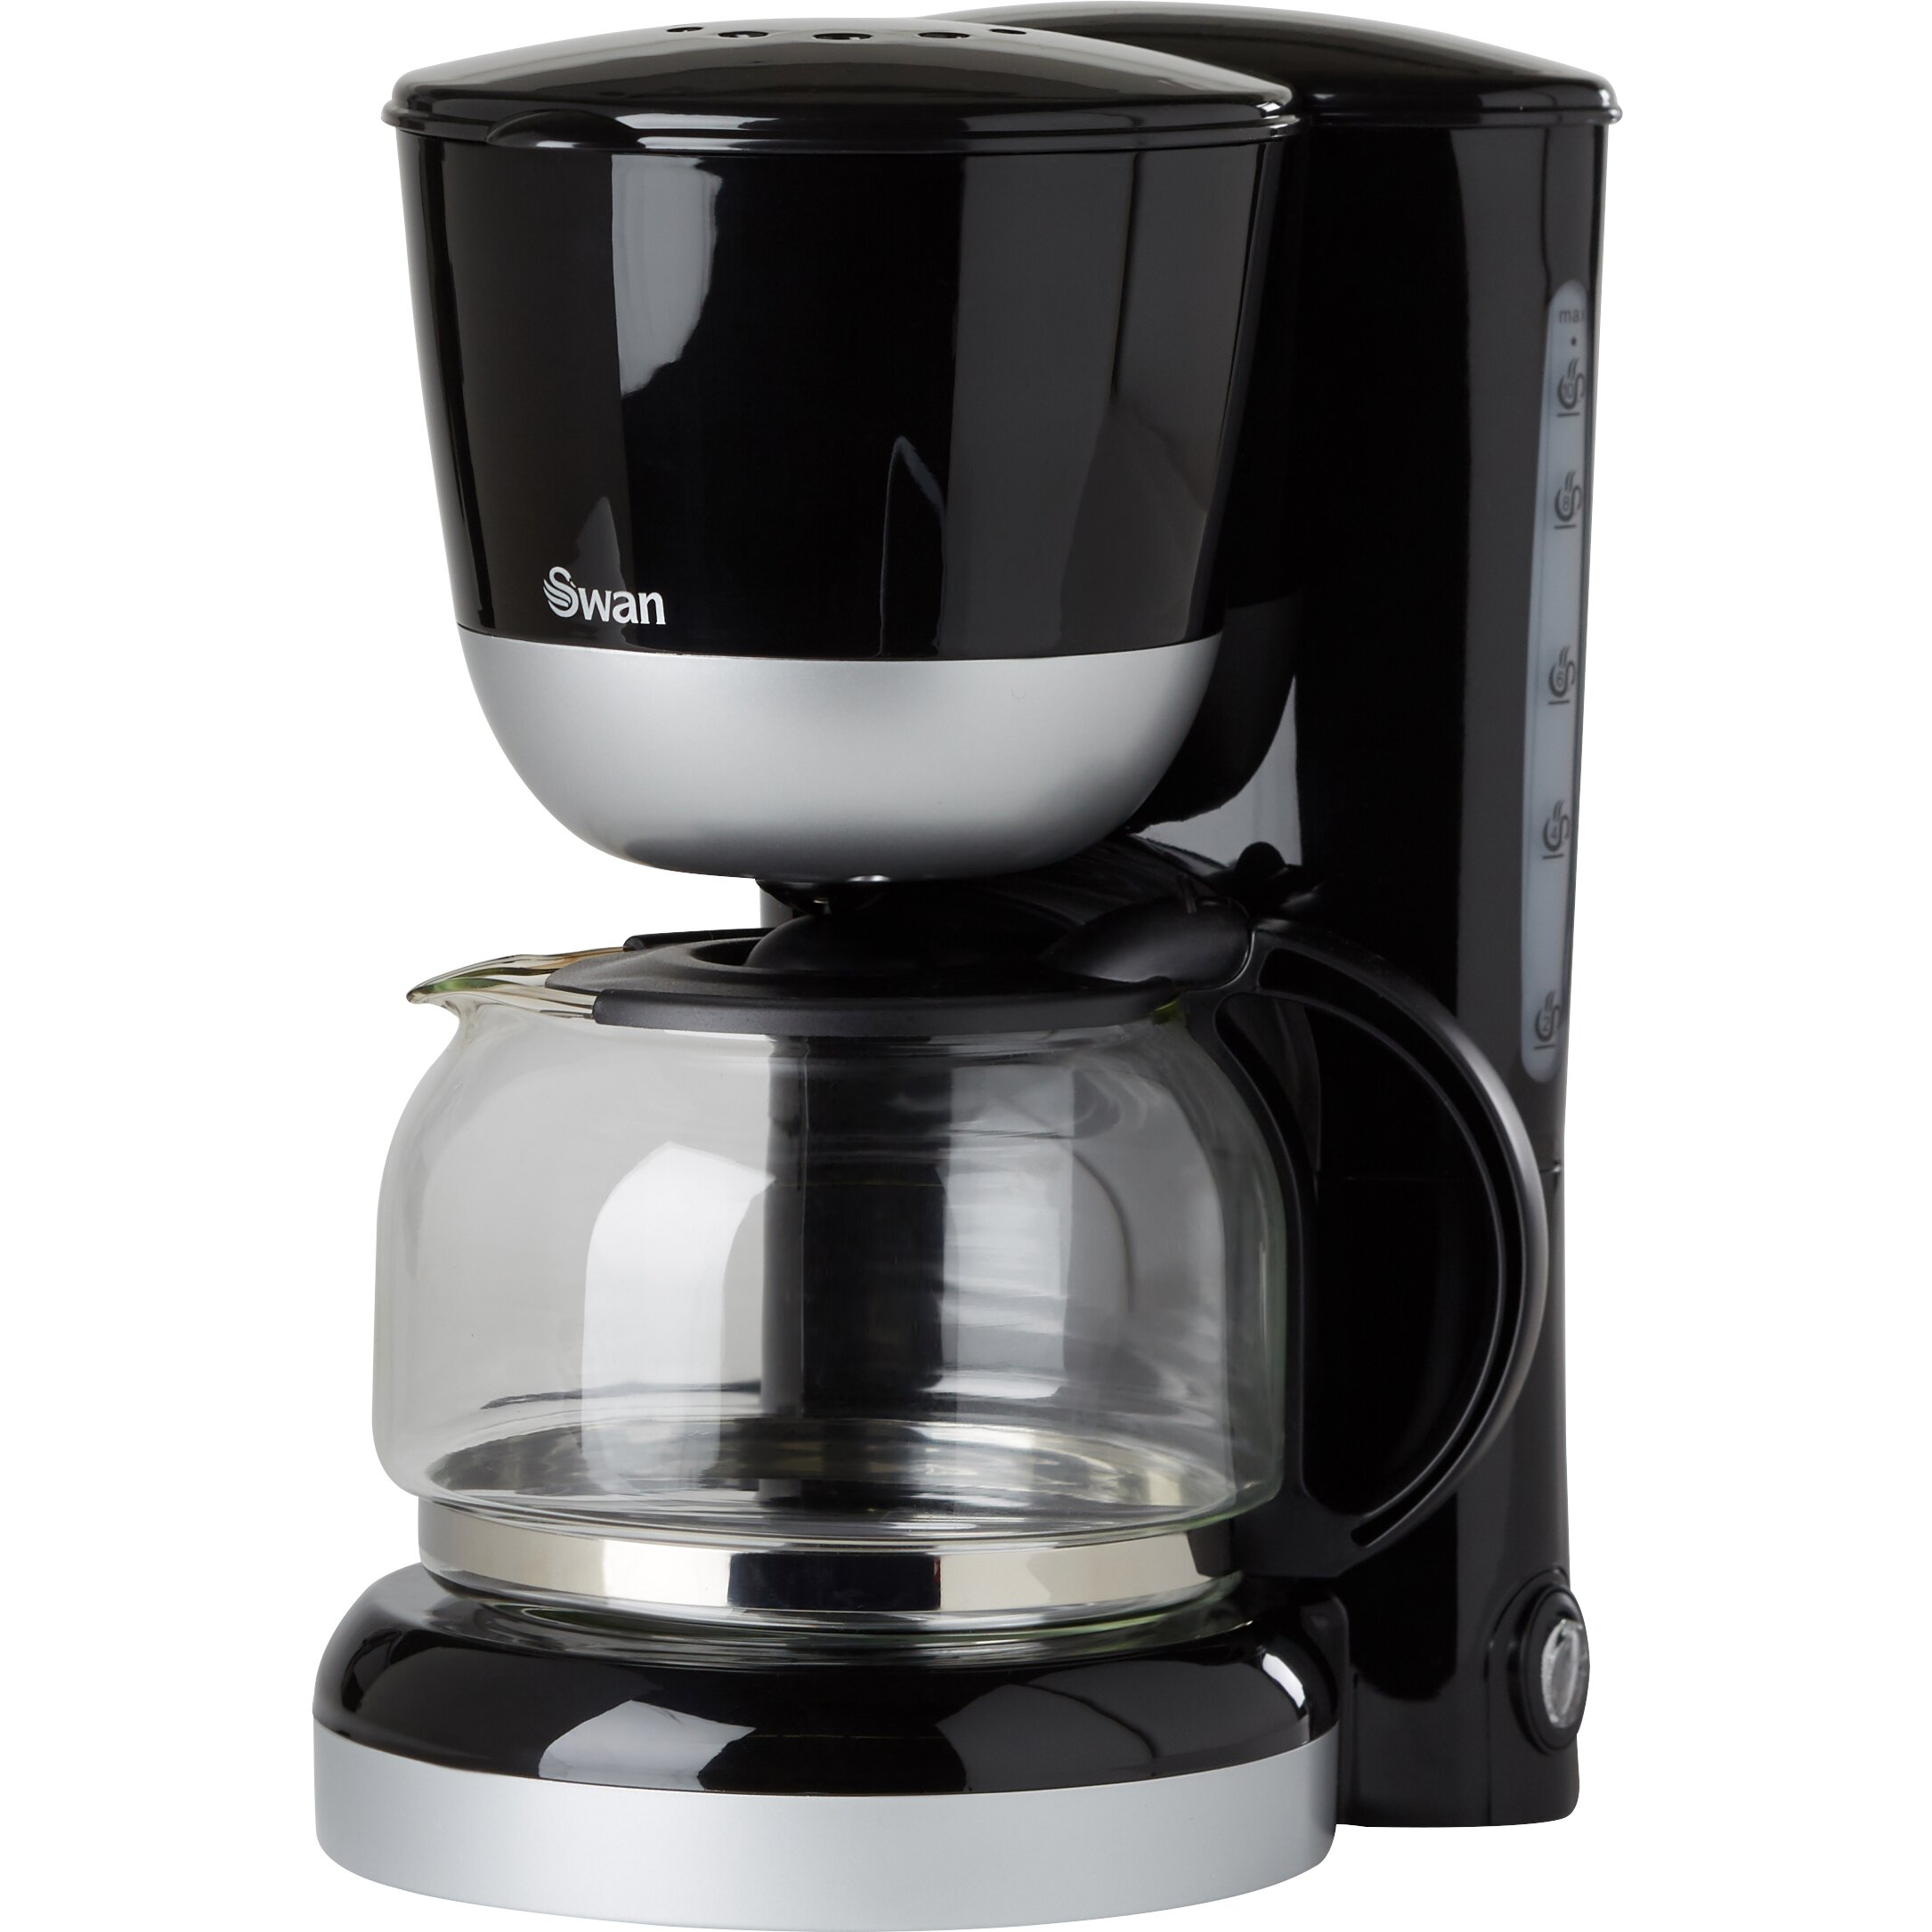 Swan Coffee Maker Argos : Swan Coffee Maker & Reviews Wayfair UK